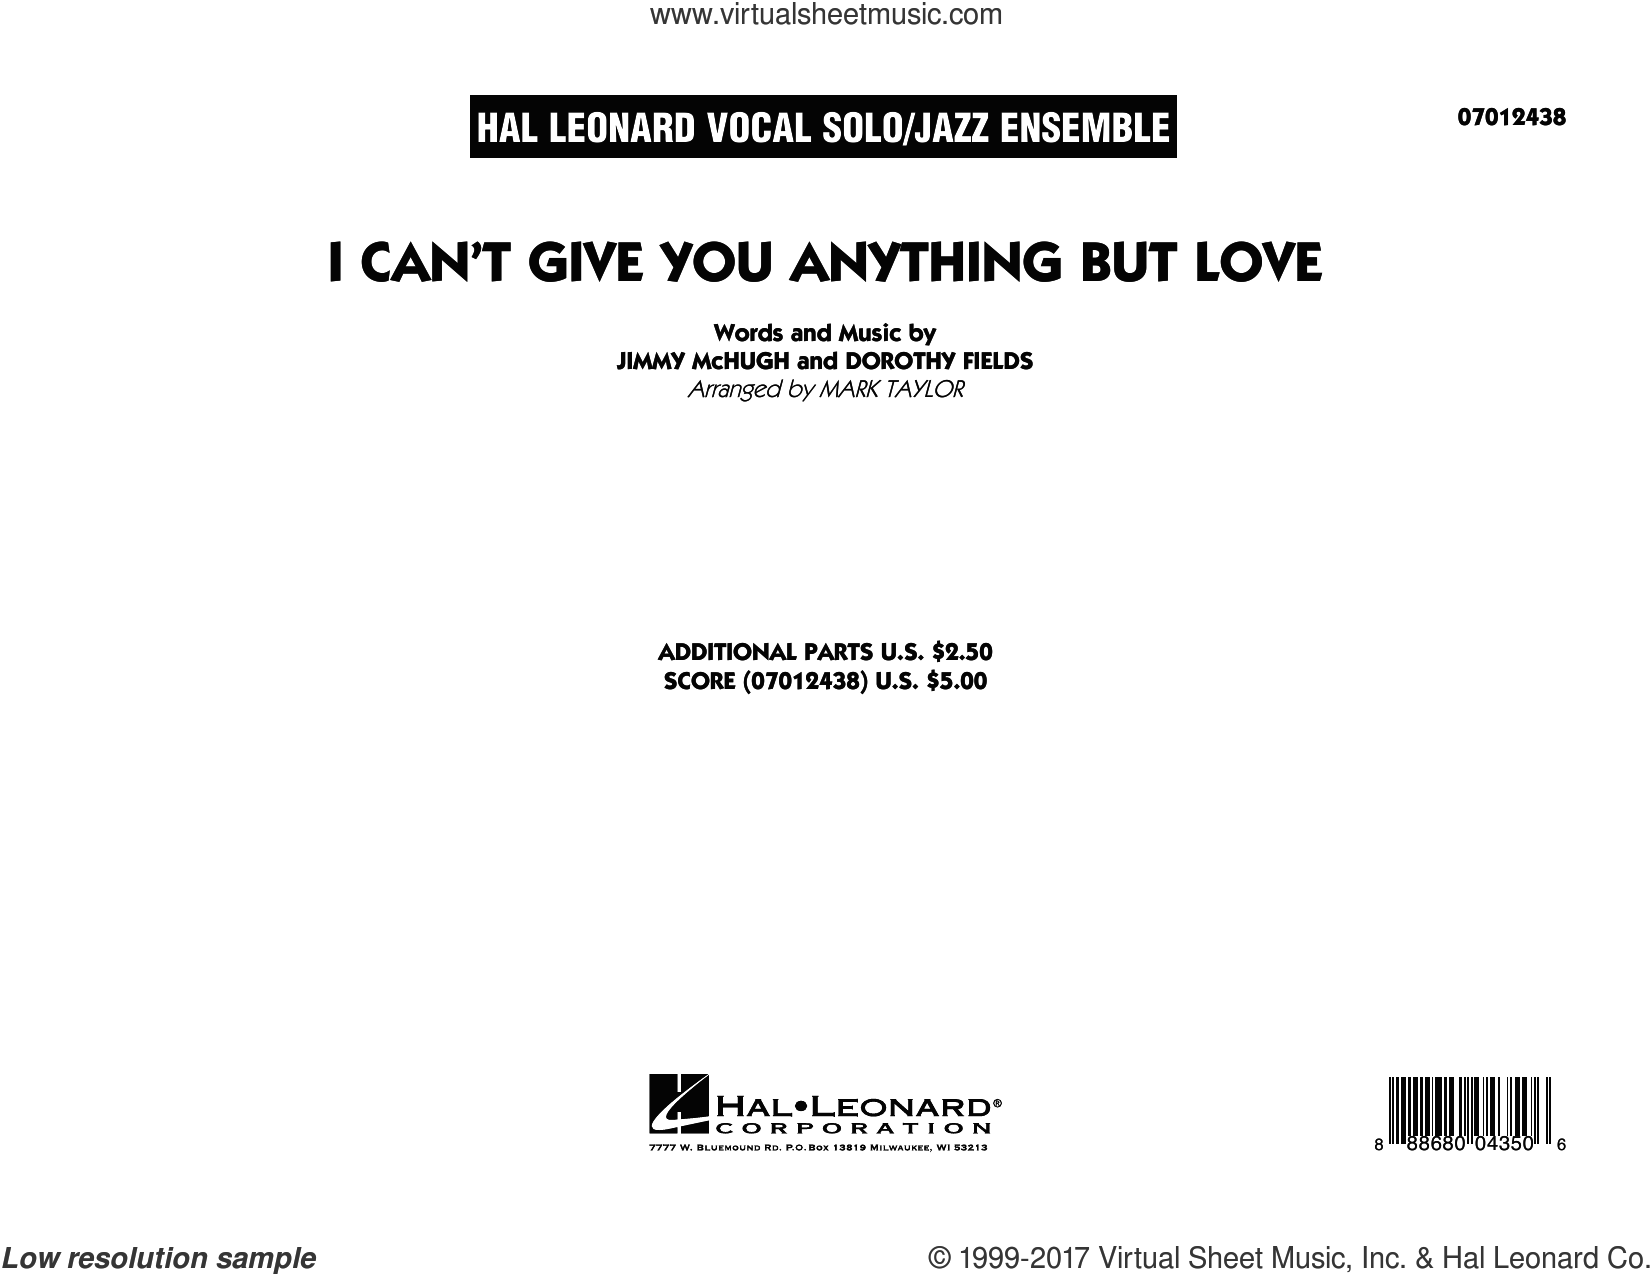 I Can't Give You Anything But Love (Key: B-flat) (COMPLETE) sheet music for jazz band by Dorothy Fields, Jimmy McHugh and Mark Taylor, intermediate skill level